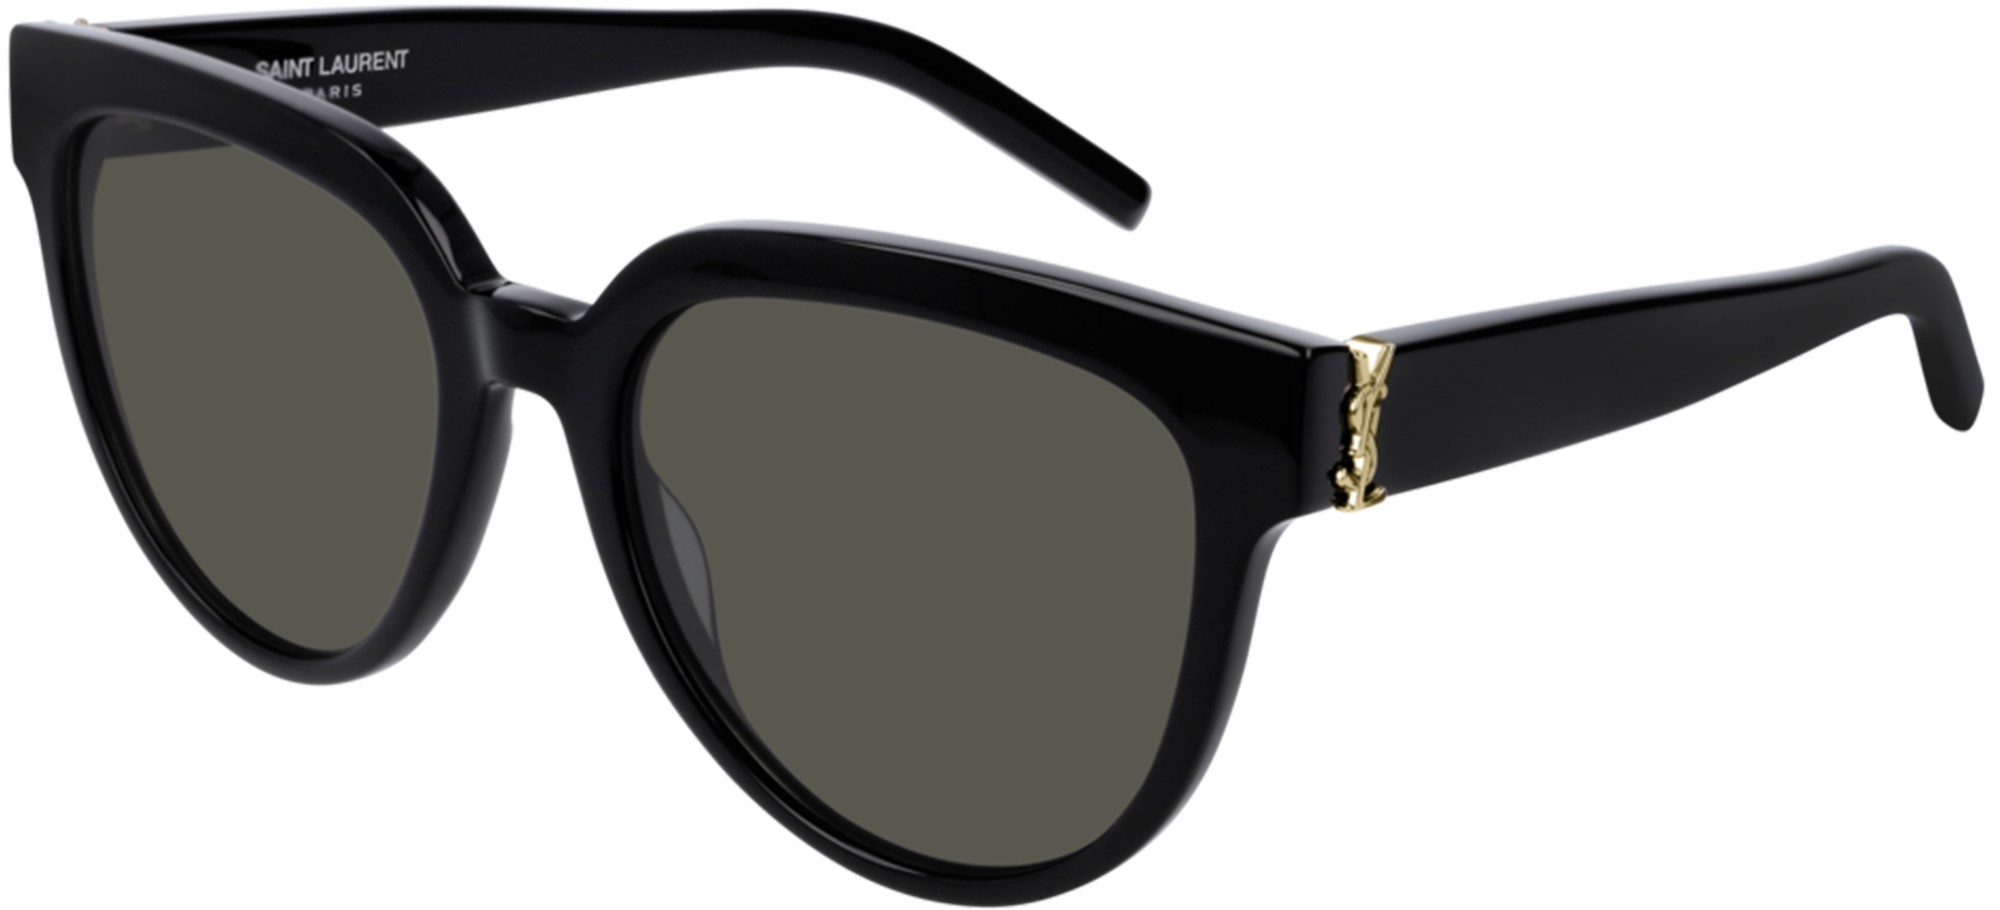 Saint Laurent sunglasses SL M28